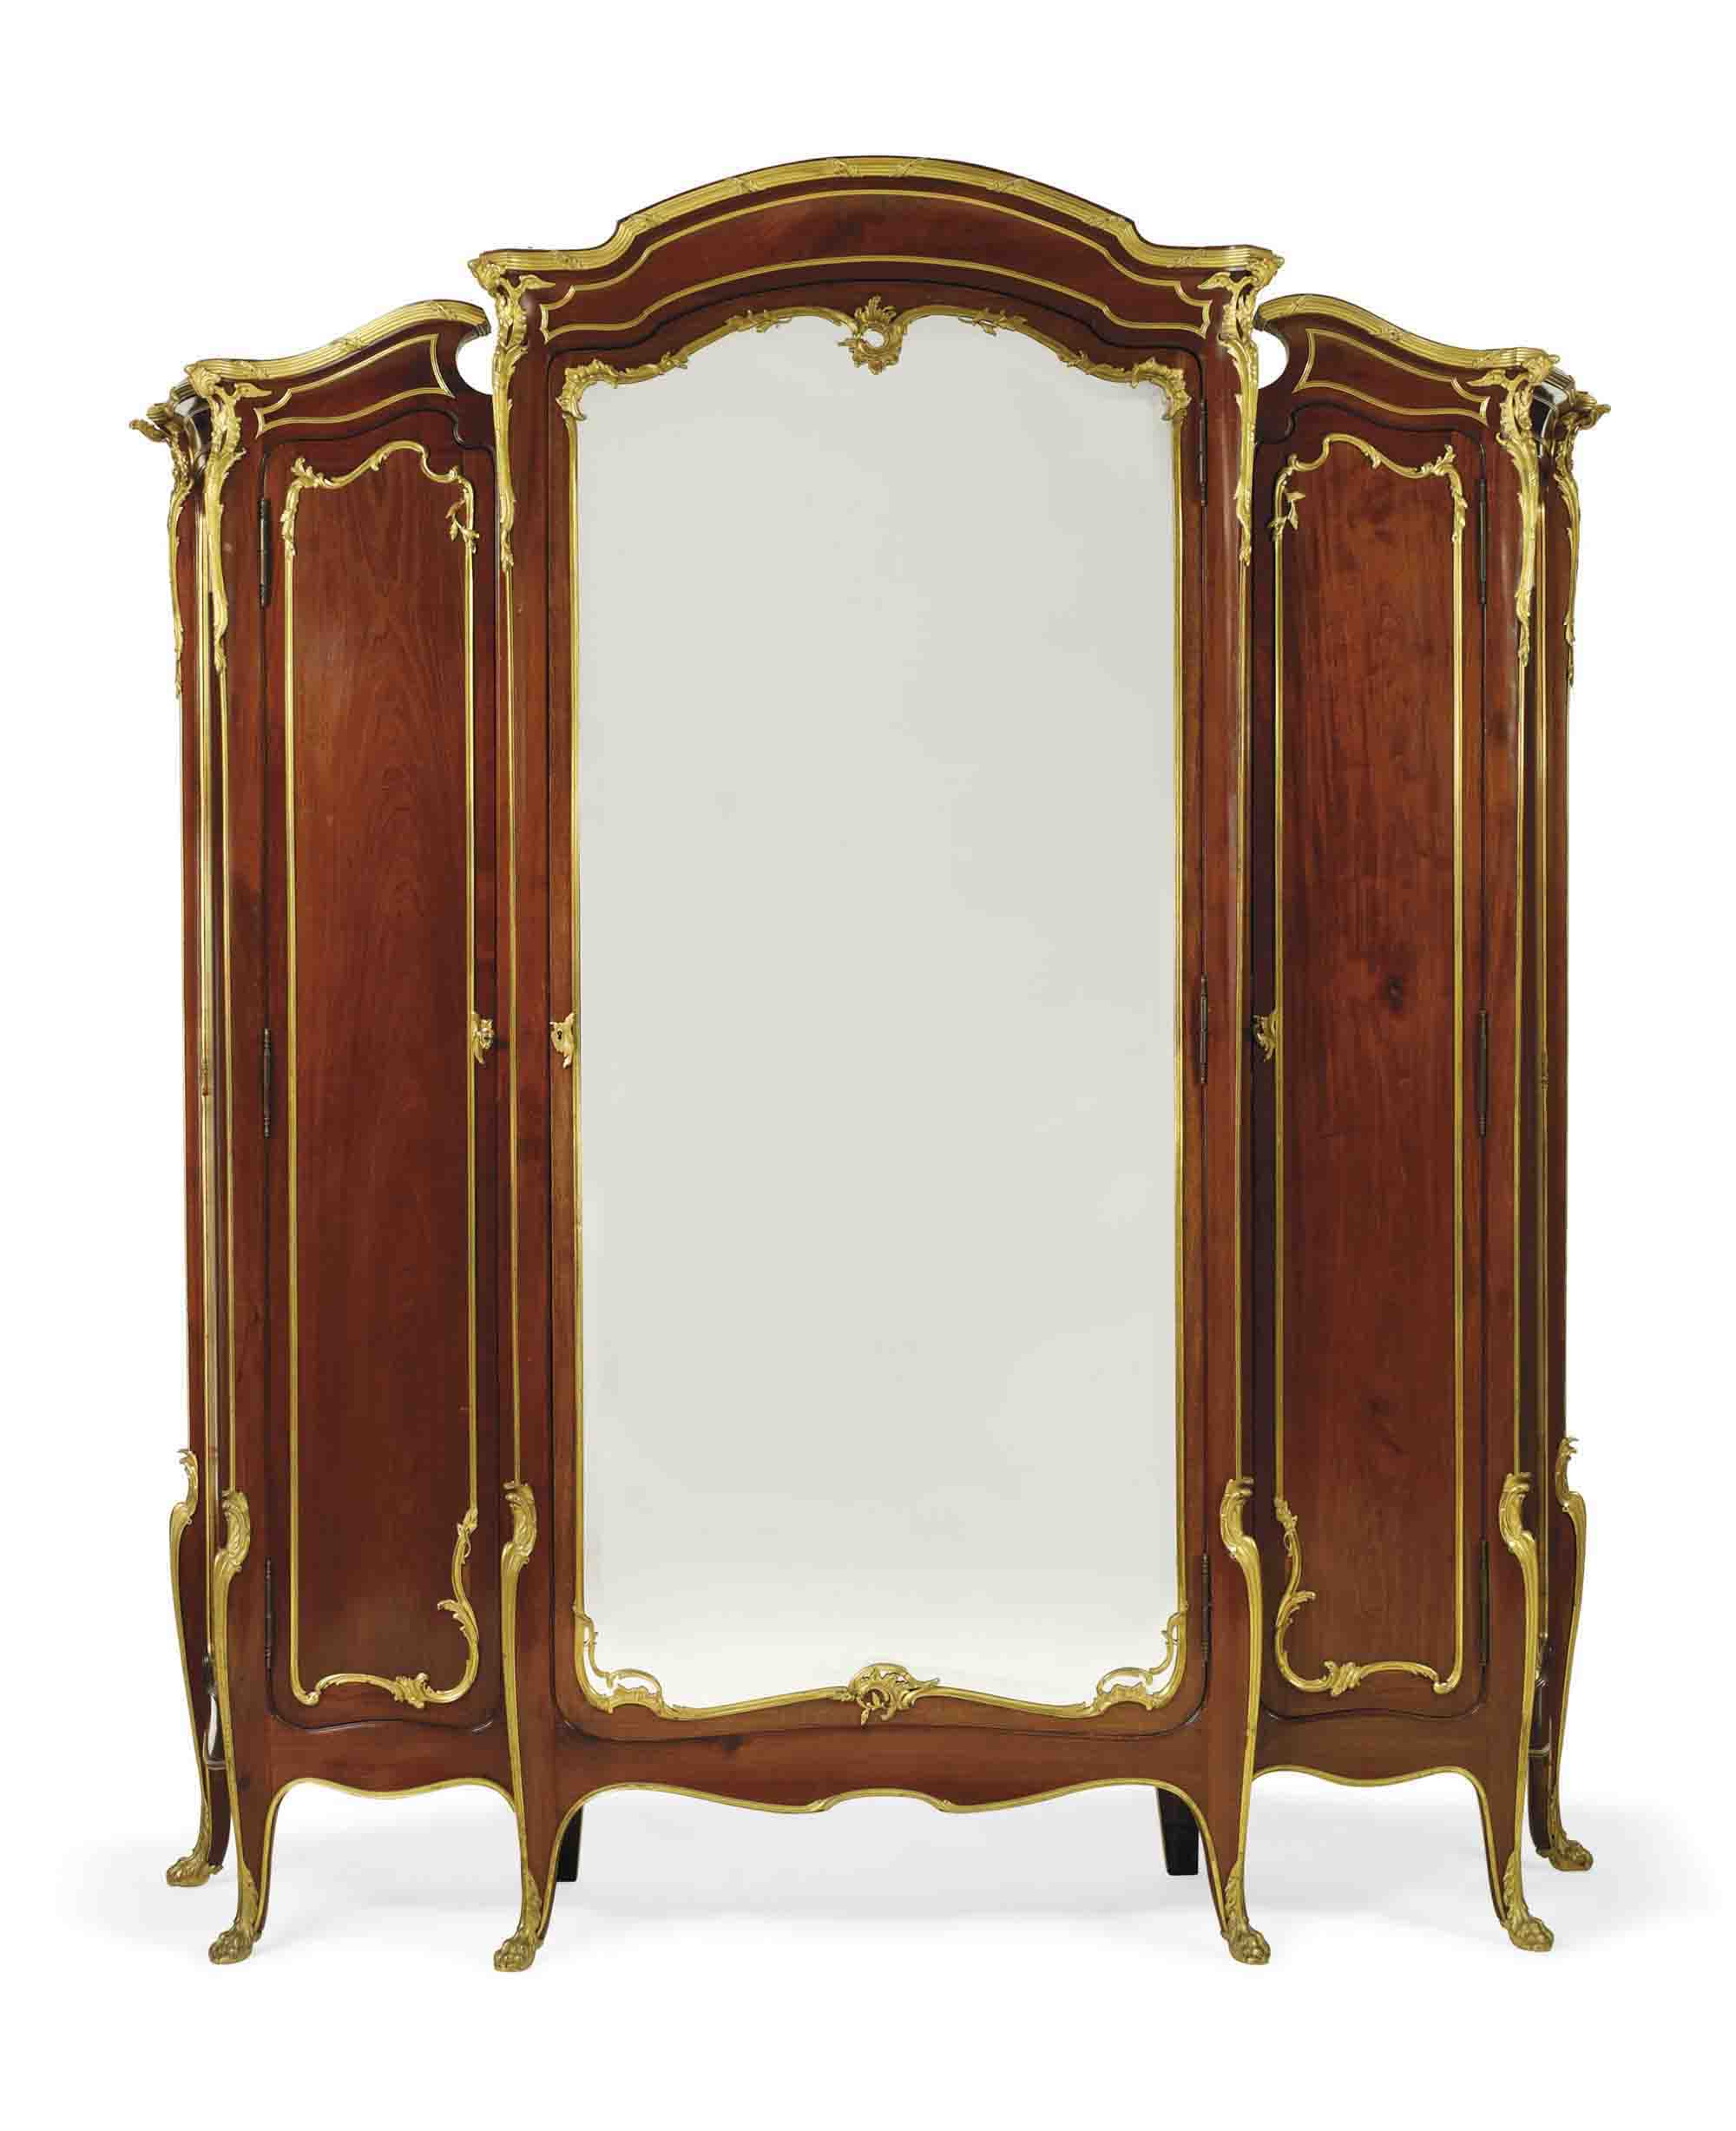 A FRENCH ORMOLU-MOUNTED MAHOGANY ARMOIRE